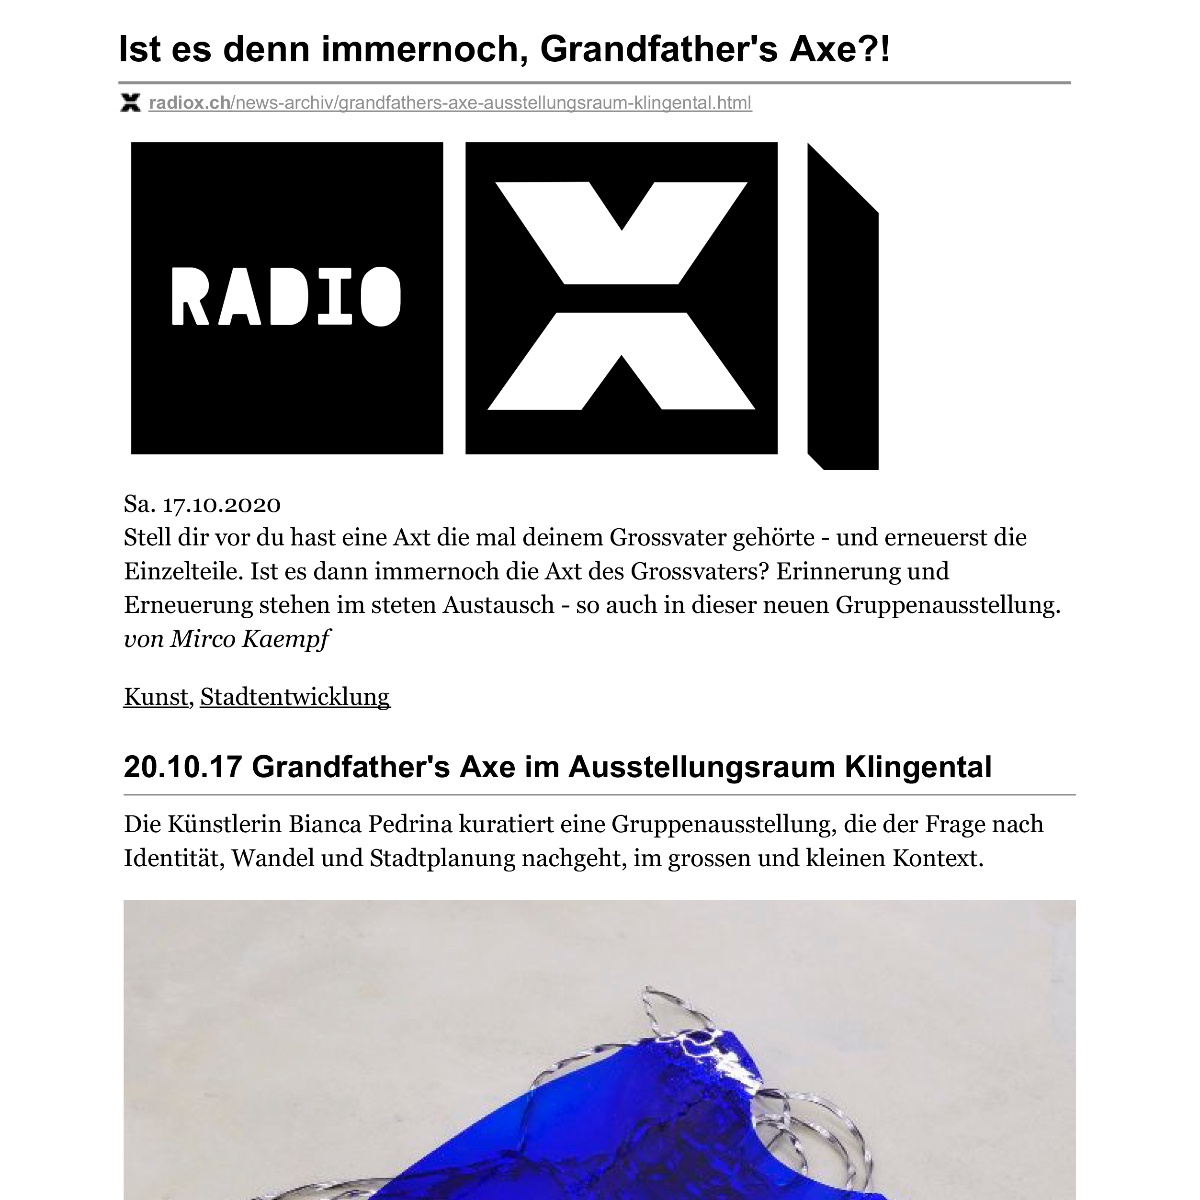 Grandfather's Axe – radiox.ch